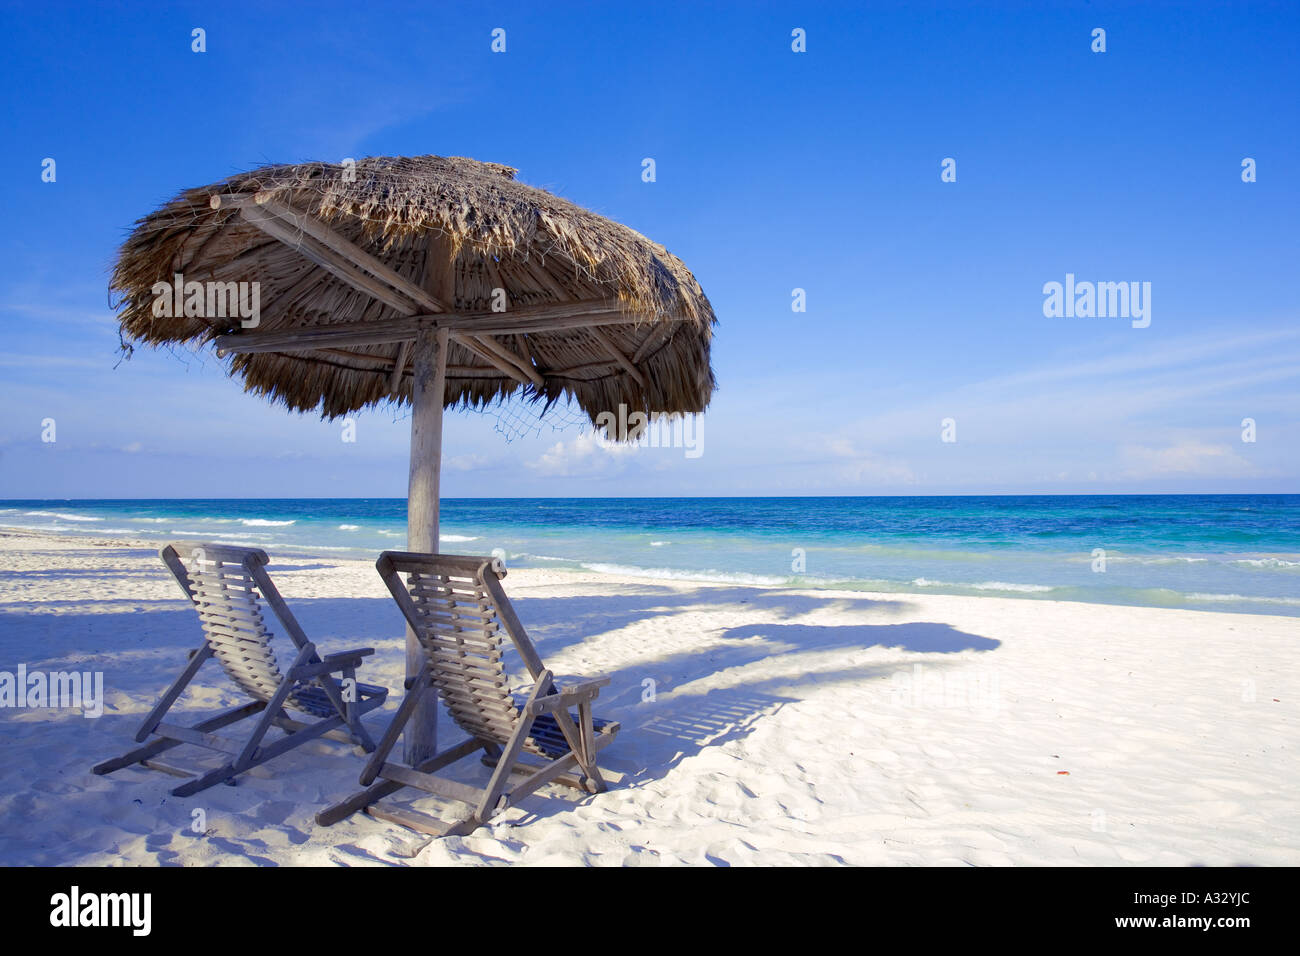 Caribbean Beach Scenes: Caribbean Beach Scene With Two Chairs Under Shade Palapa